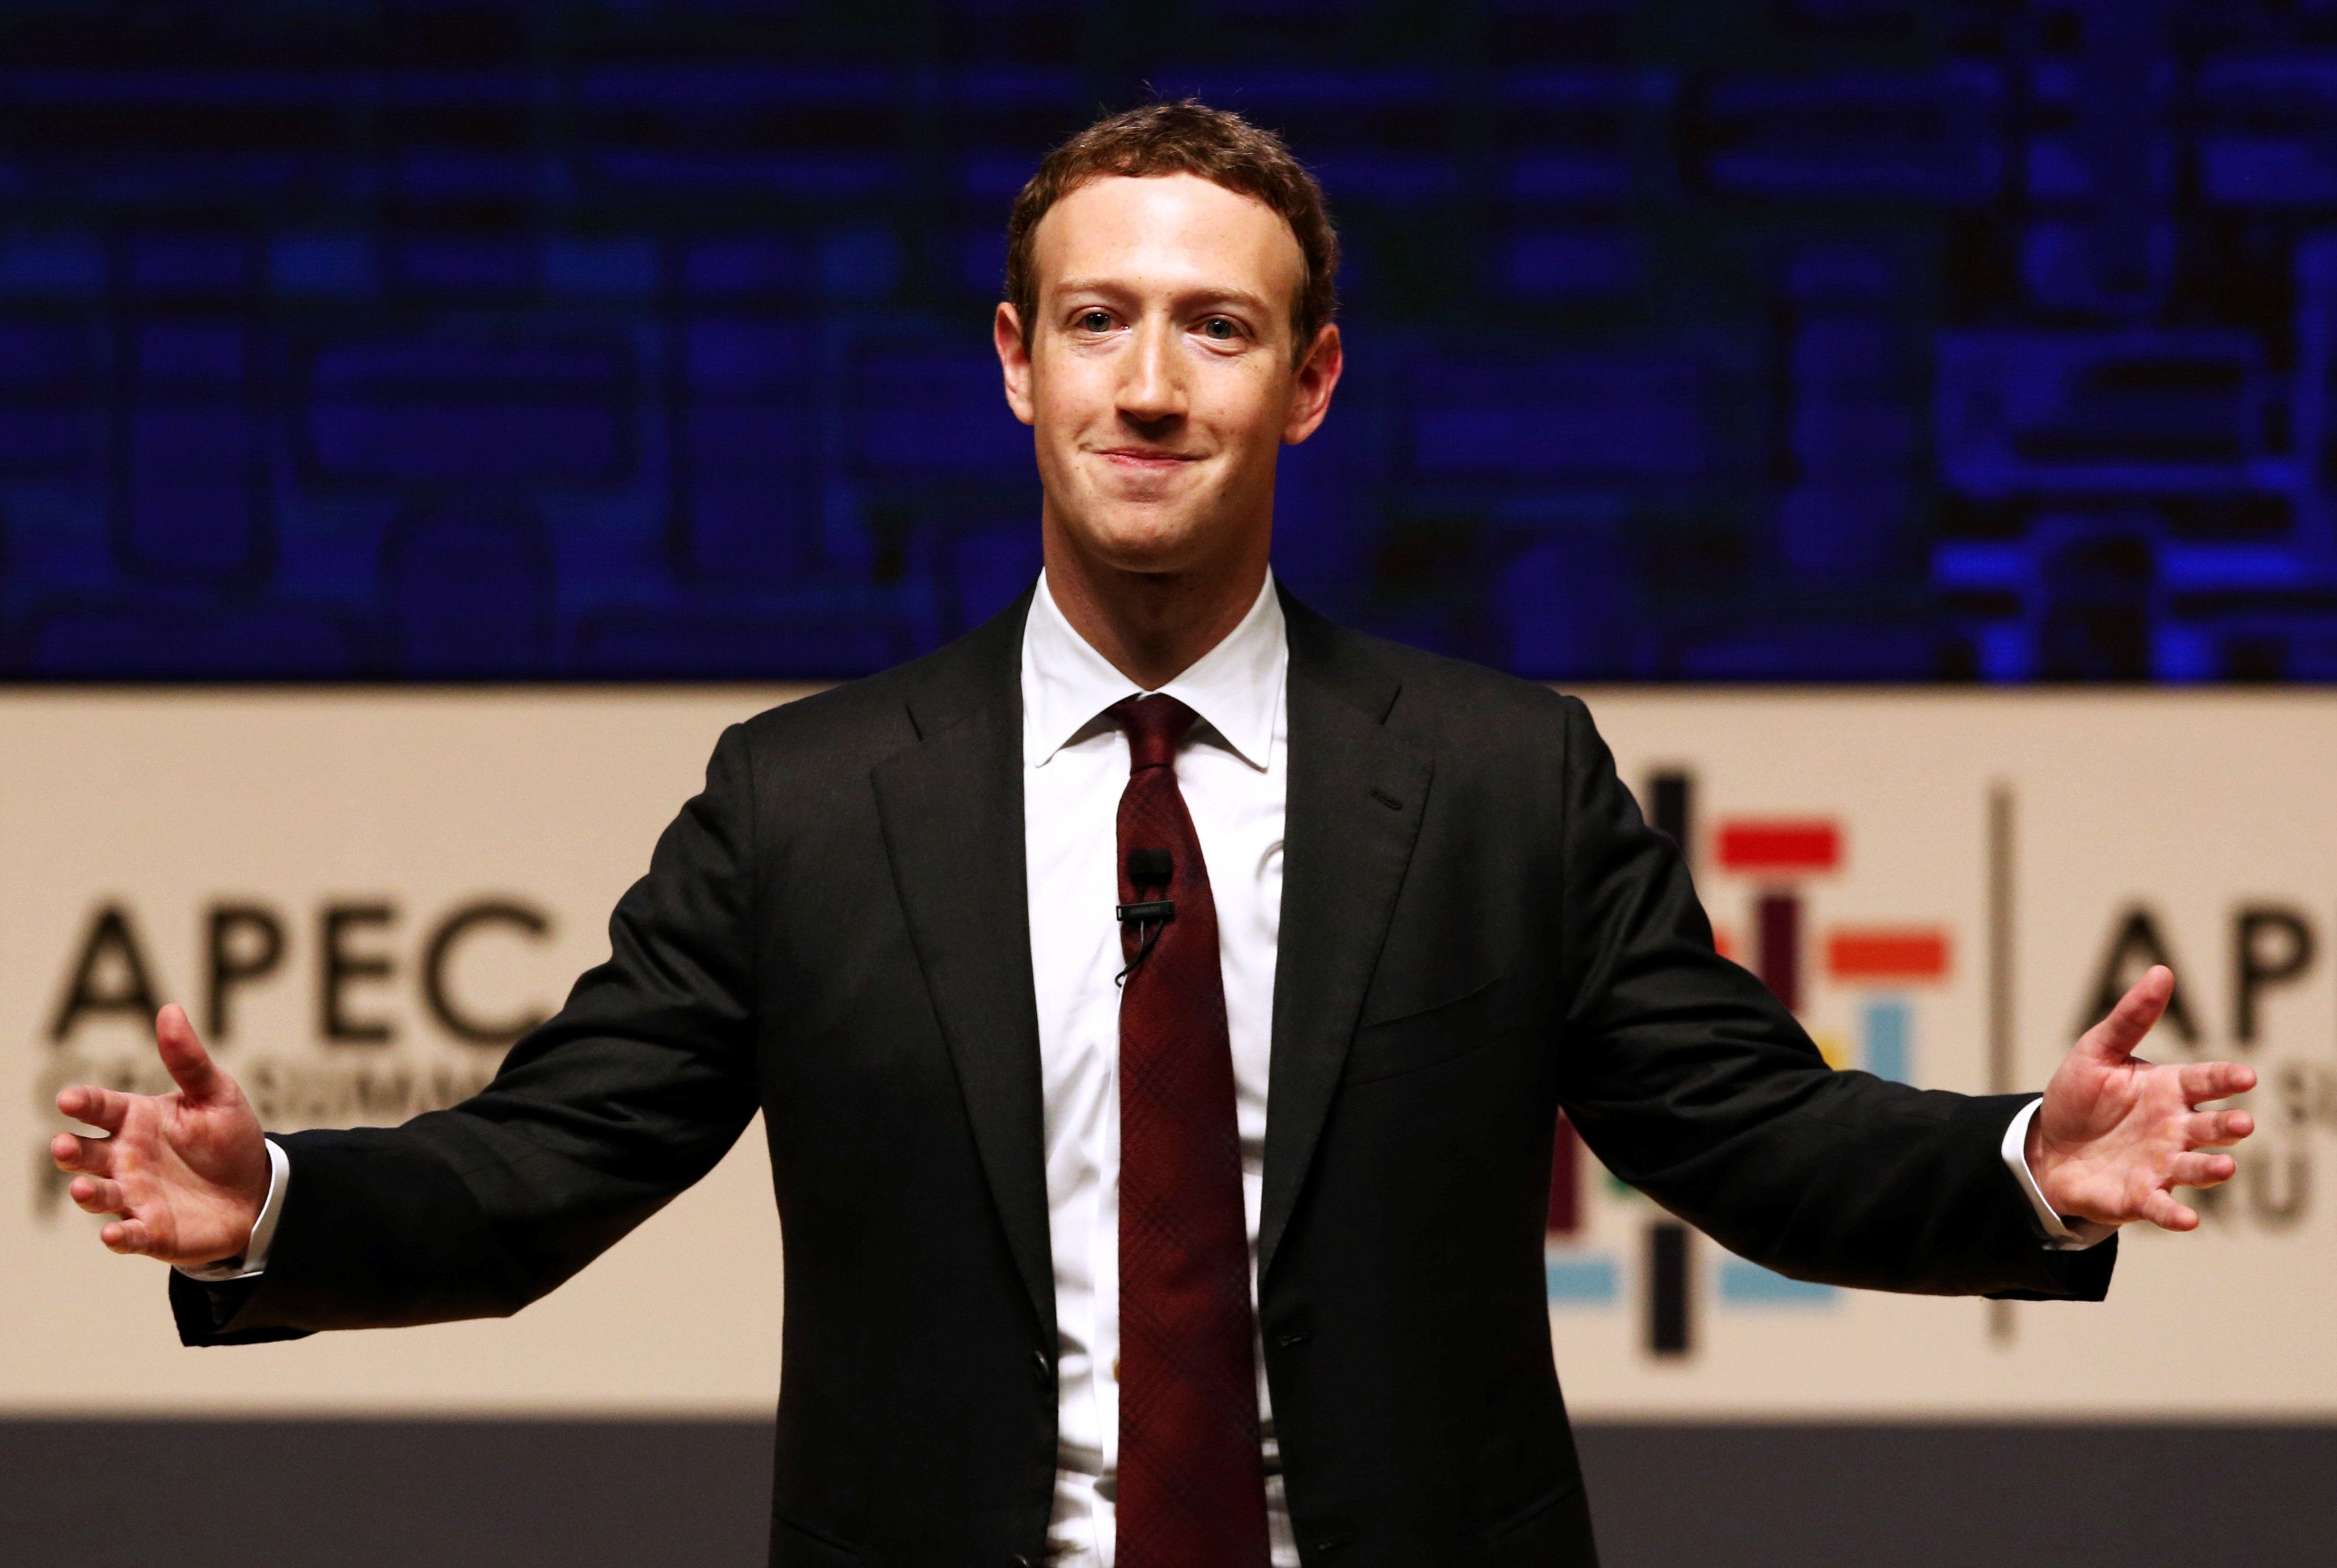 Facebook CEO Mark Zuckerberg has agreed to testify about the data